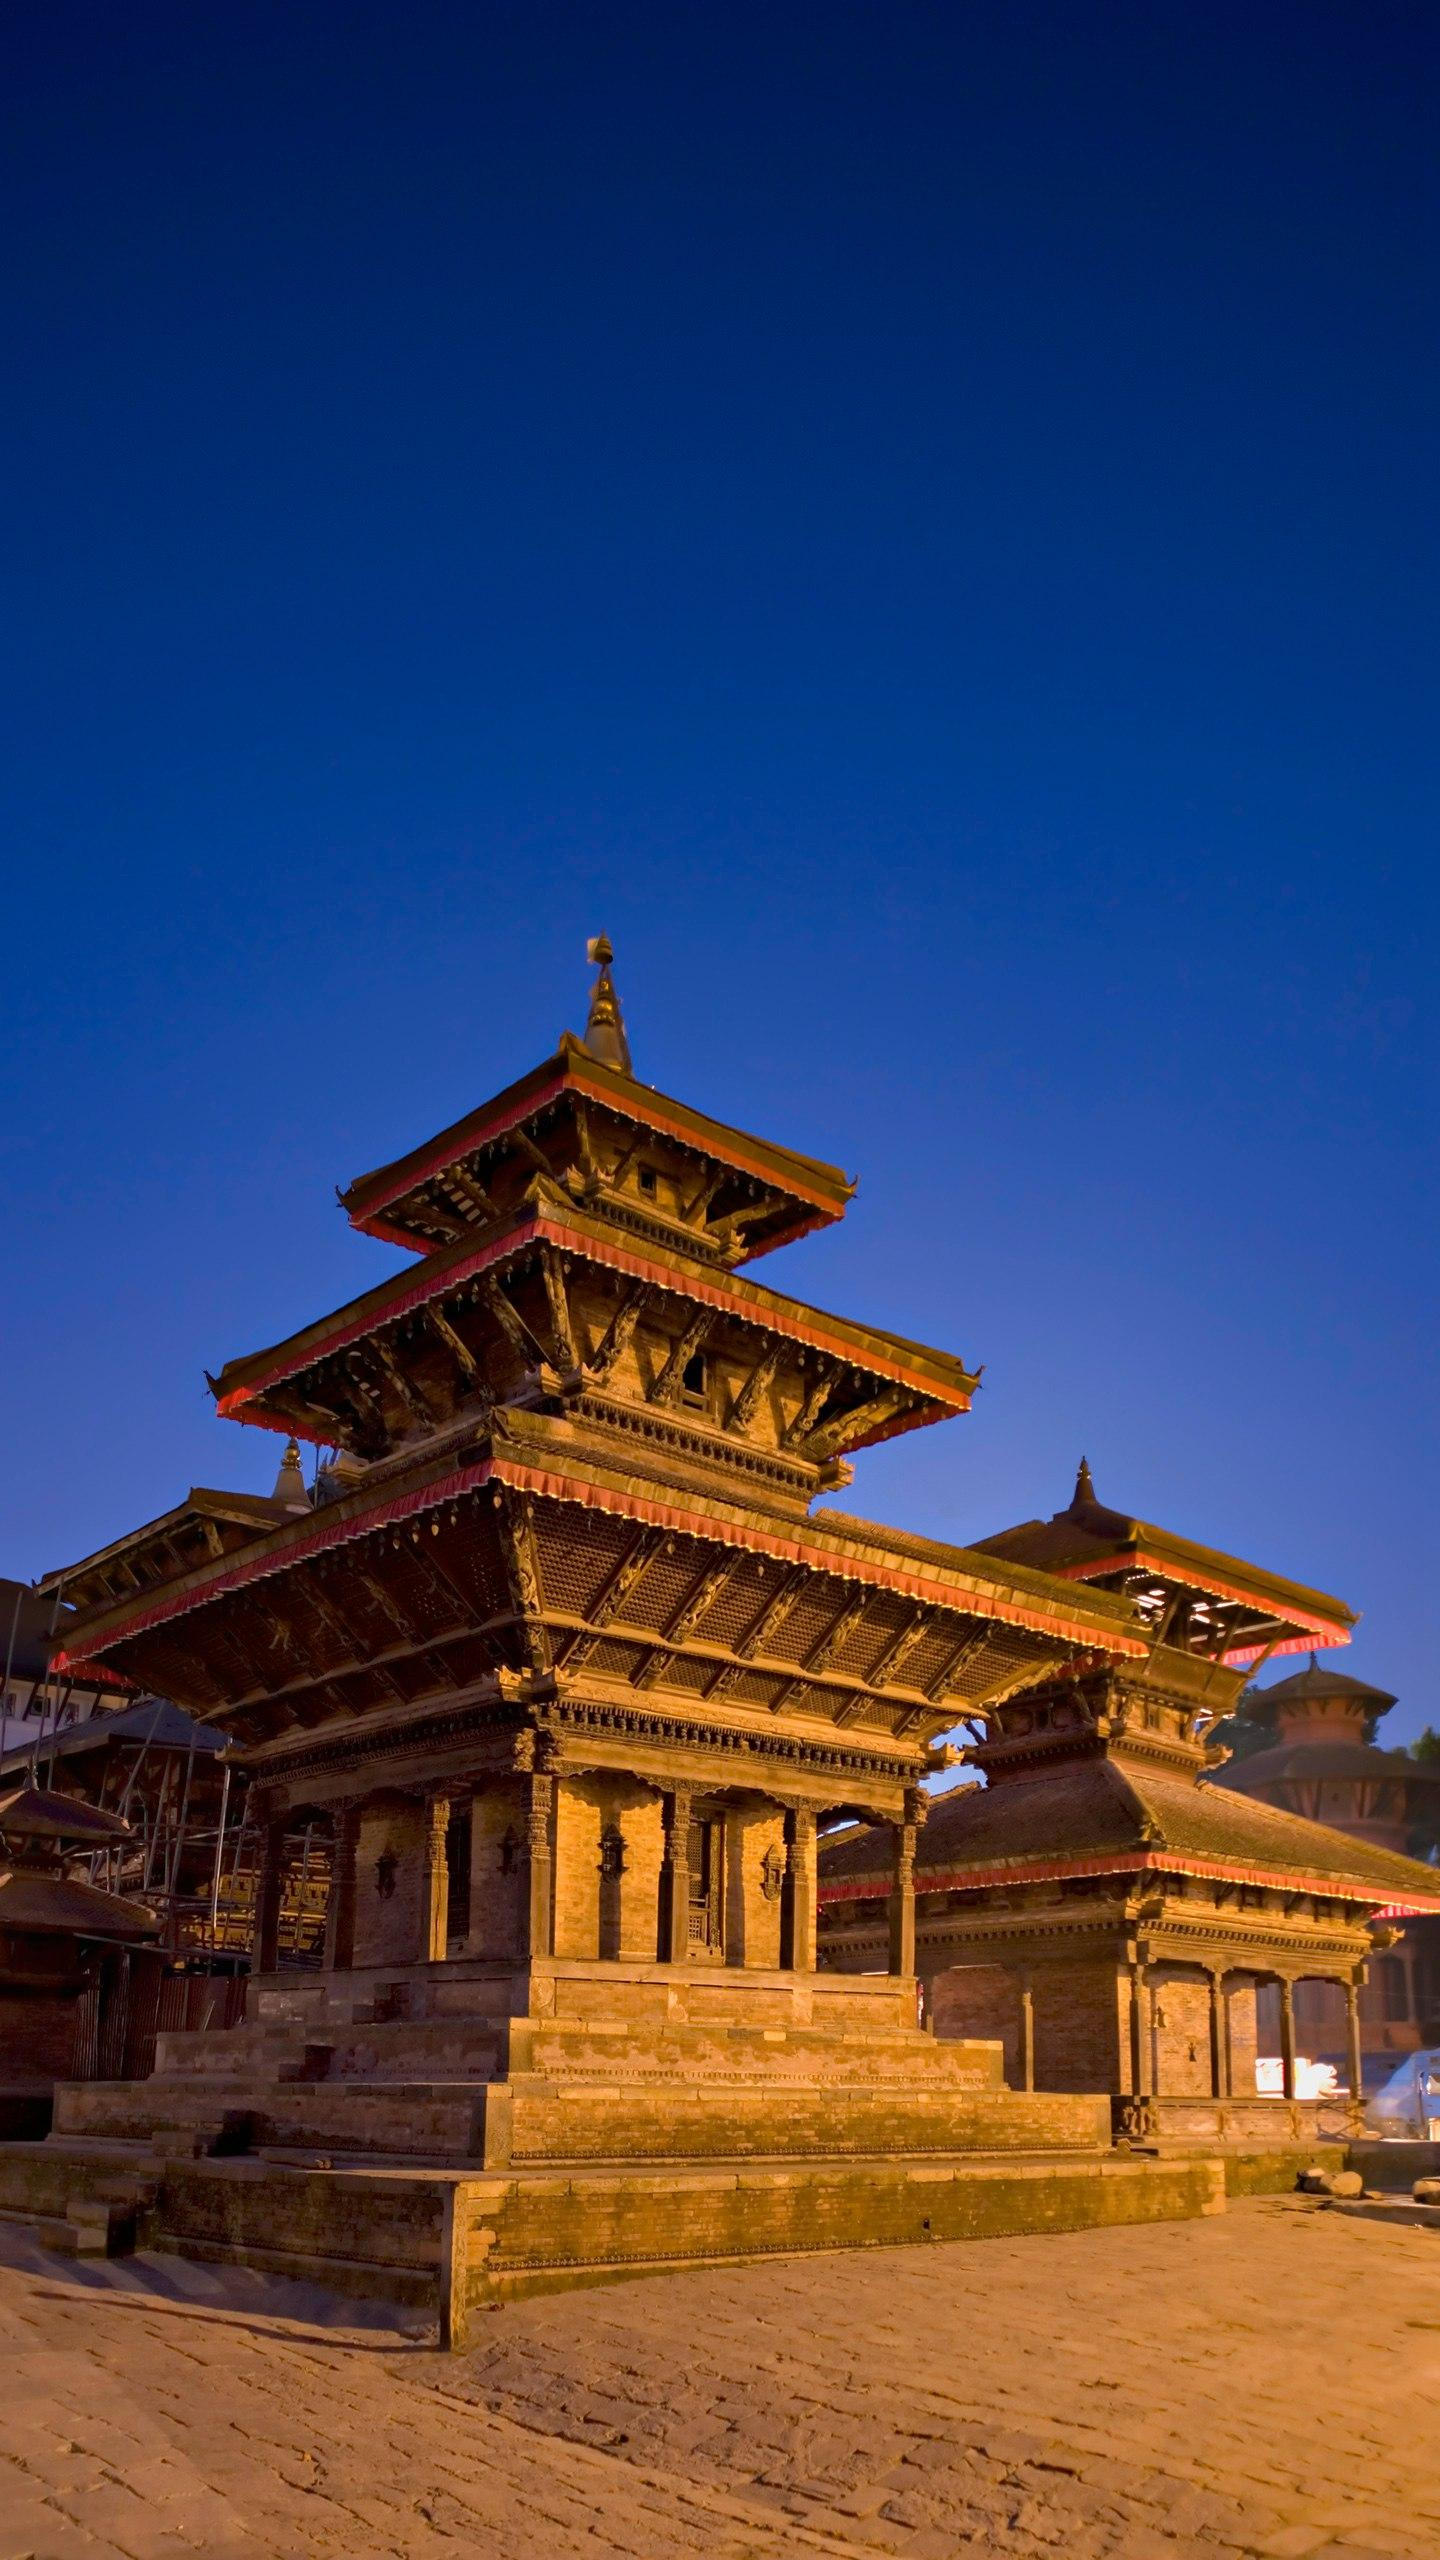 Explore Nepal. Nepal has a long history and a splendid culture. Many dynasties have left a glorious relic of Nepal.